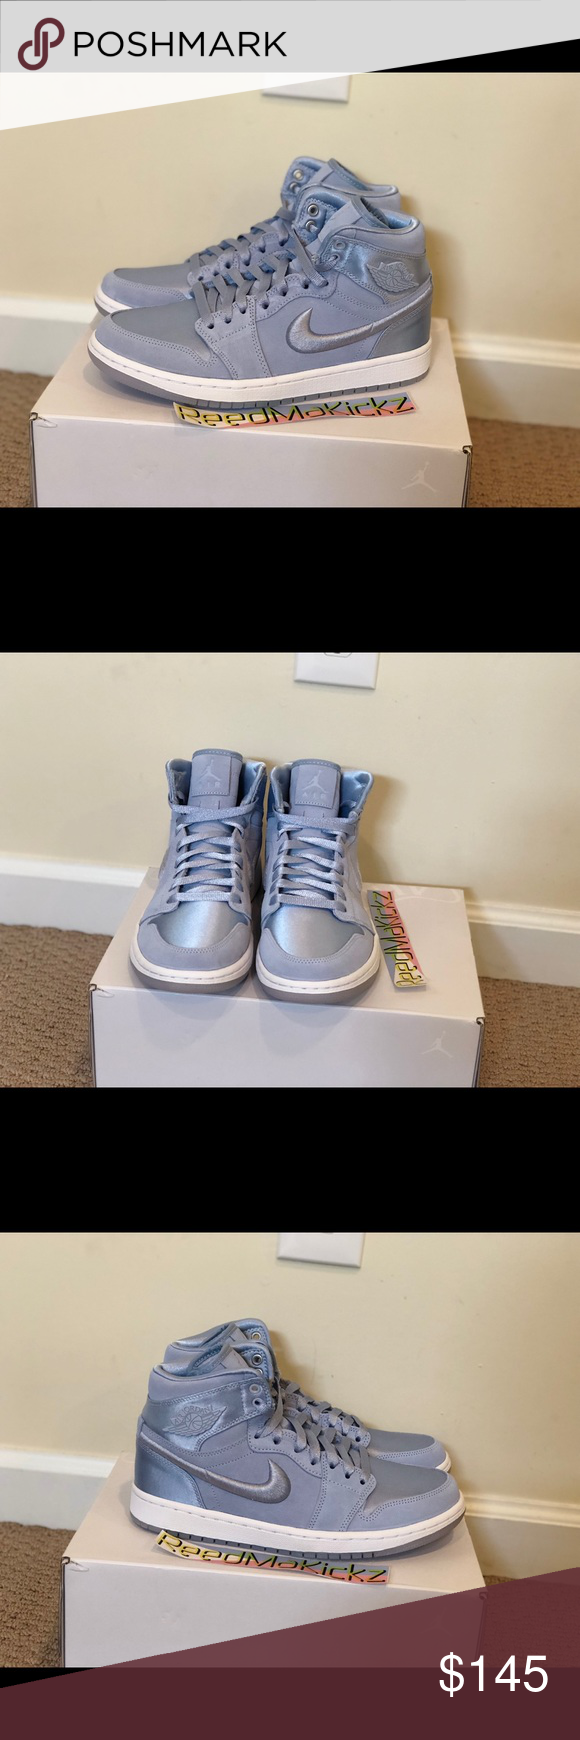 promo code 4a85f 59e36 Nike air jordan 1 retro SOH Hydrogen blue womens 100% authentic!! No trade  Brand new   never worn womens sizes style codeAO1847 445 Nike Shoes Sneakers